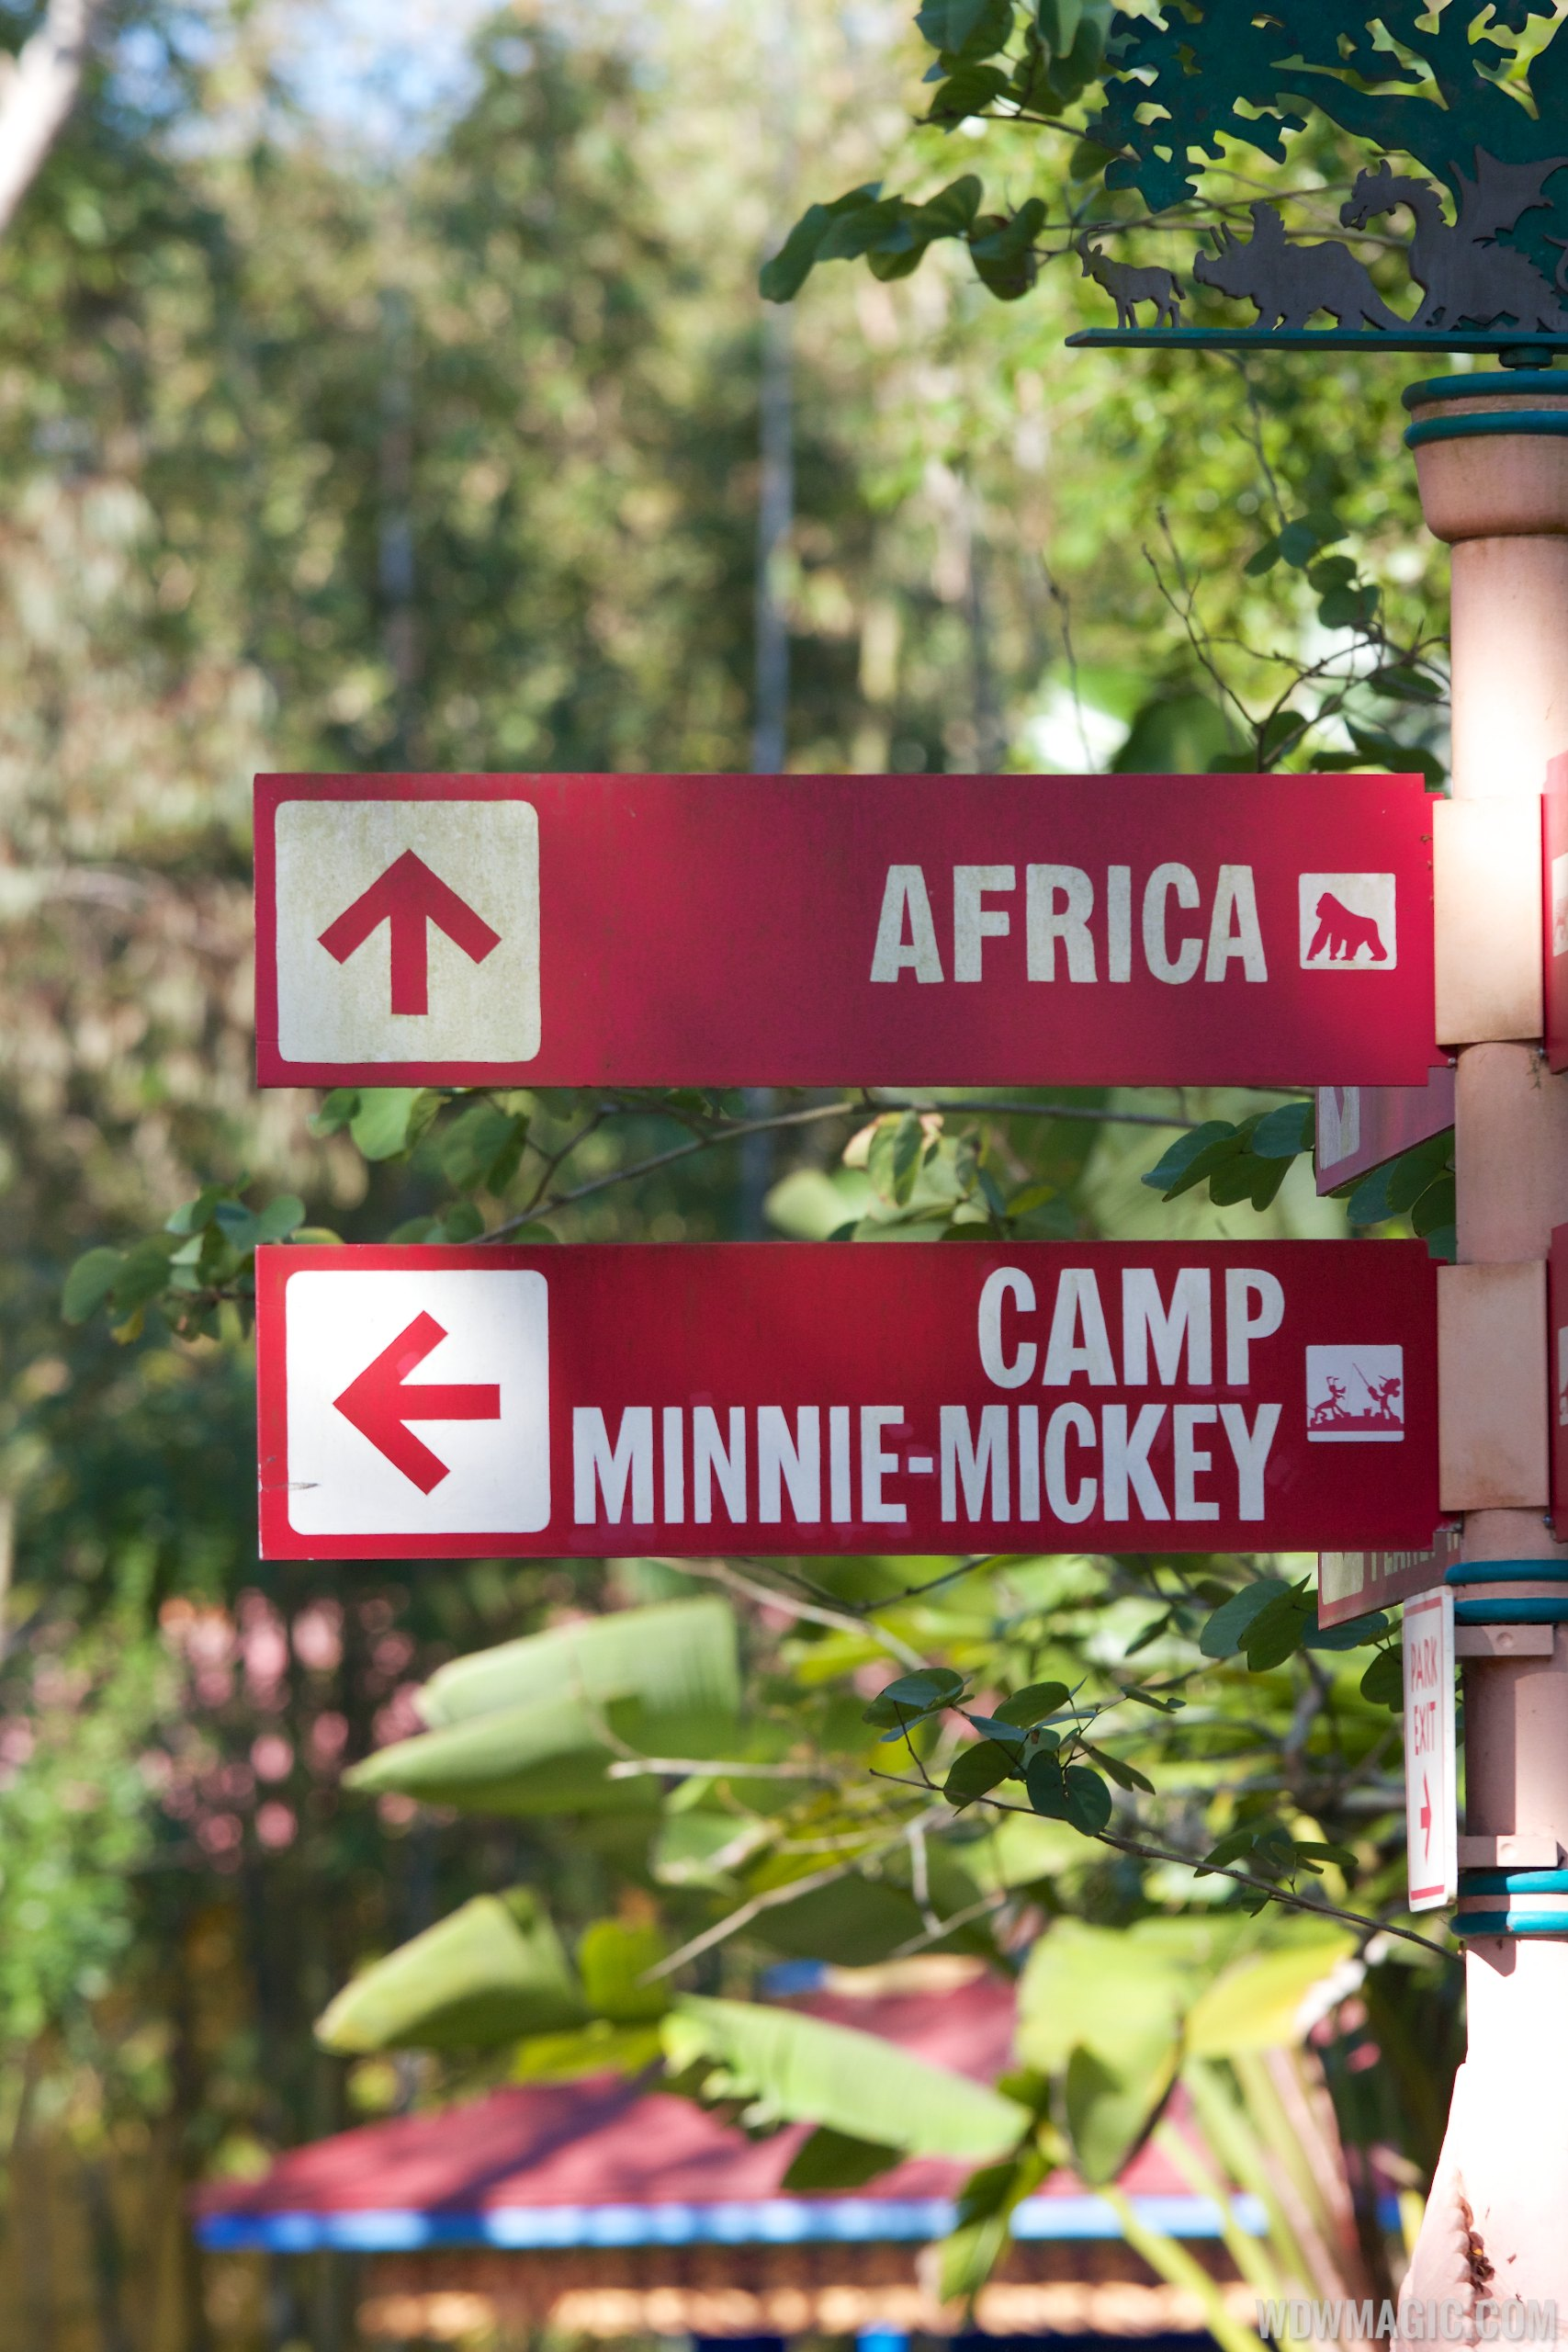 Camp Minnie-Mickey - Signage